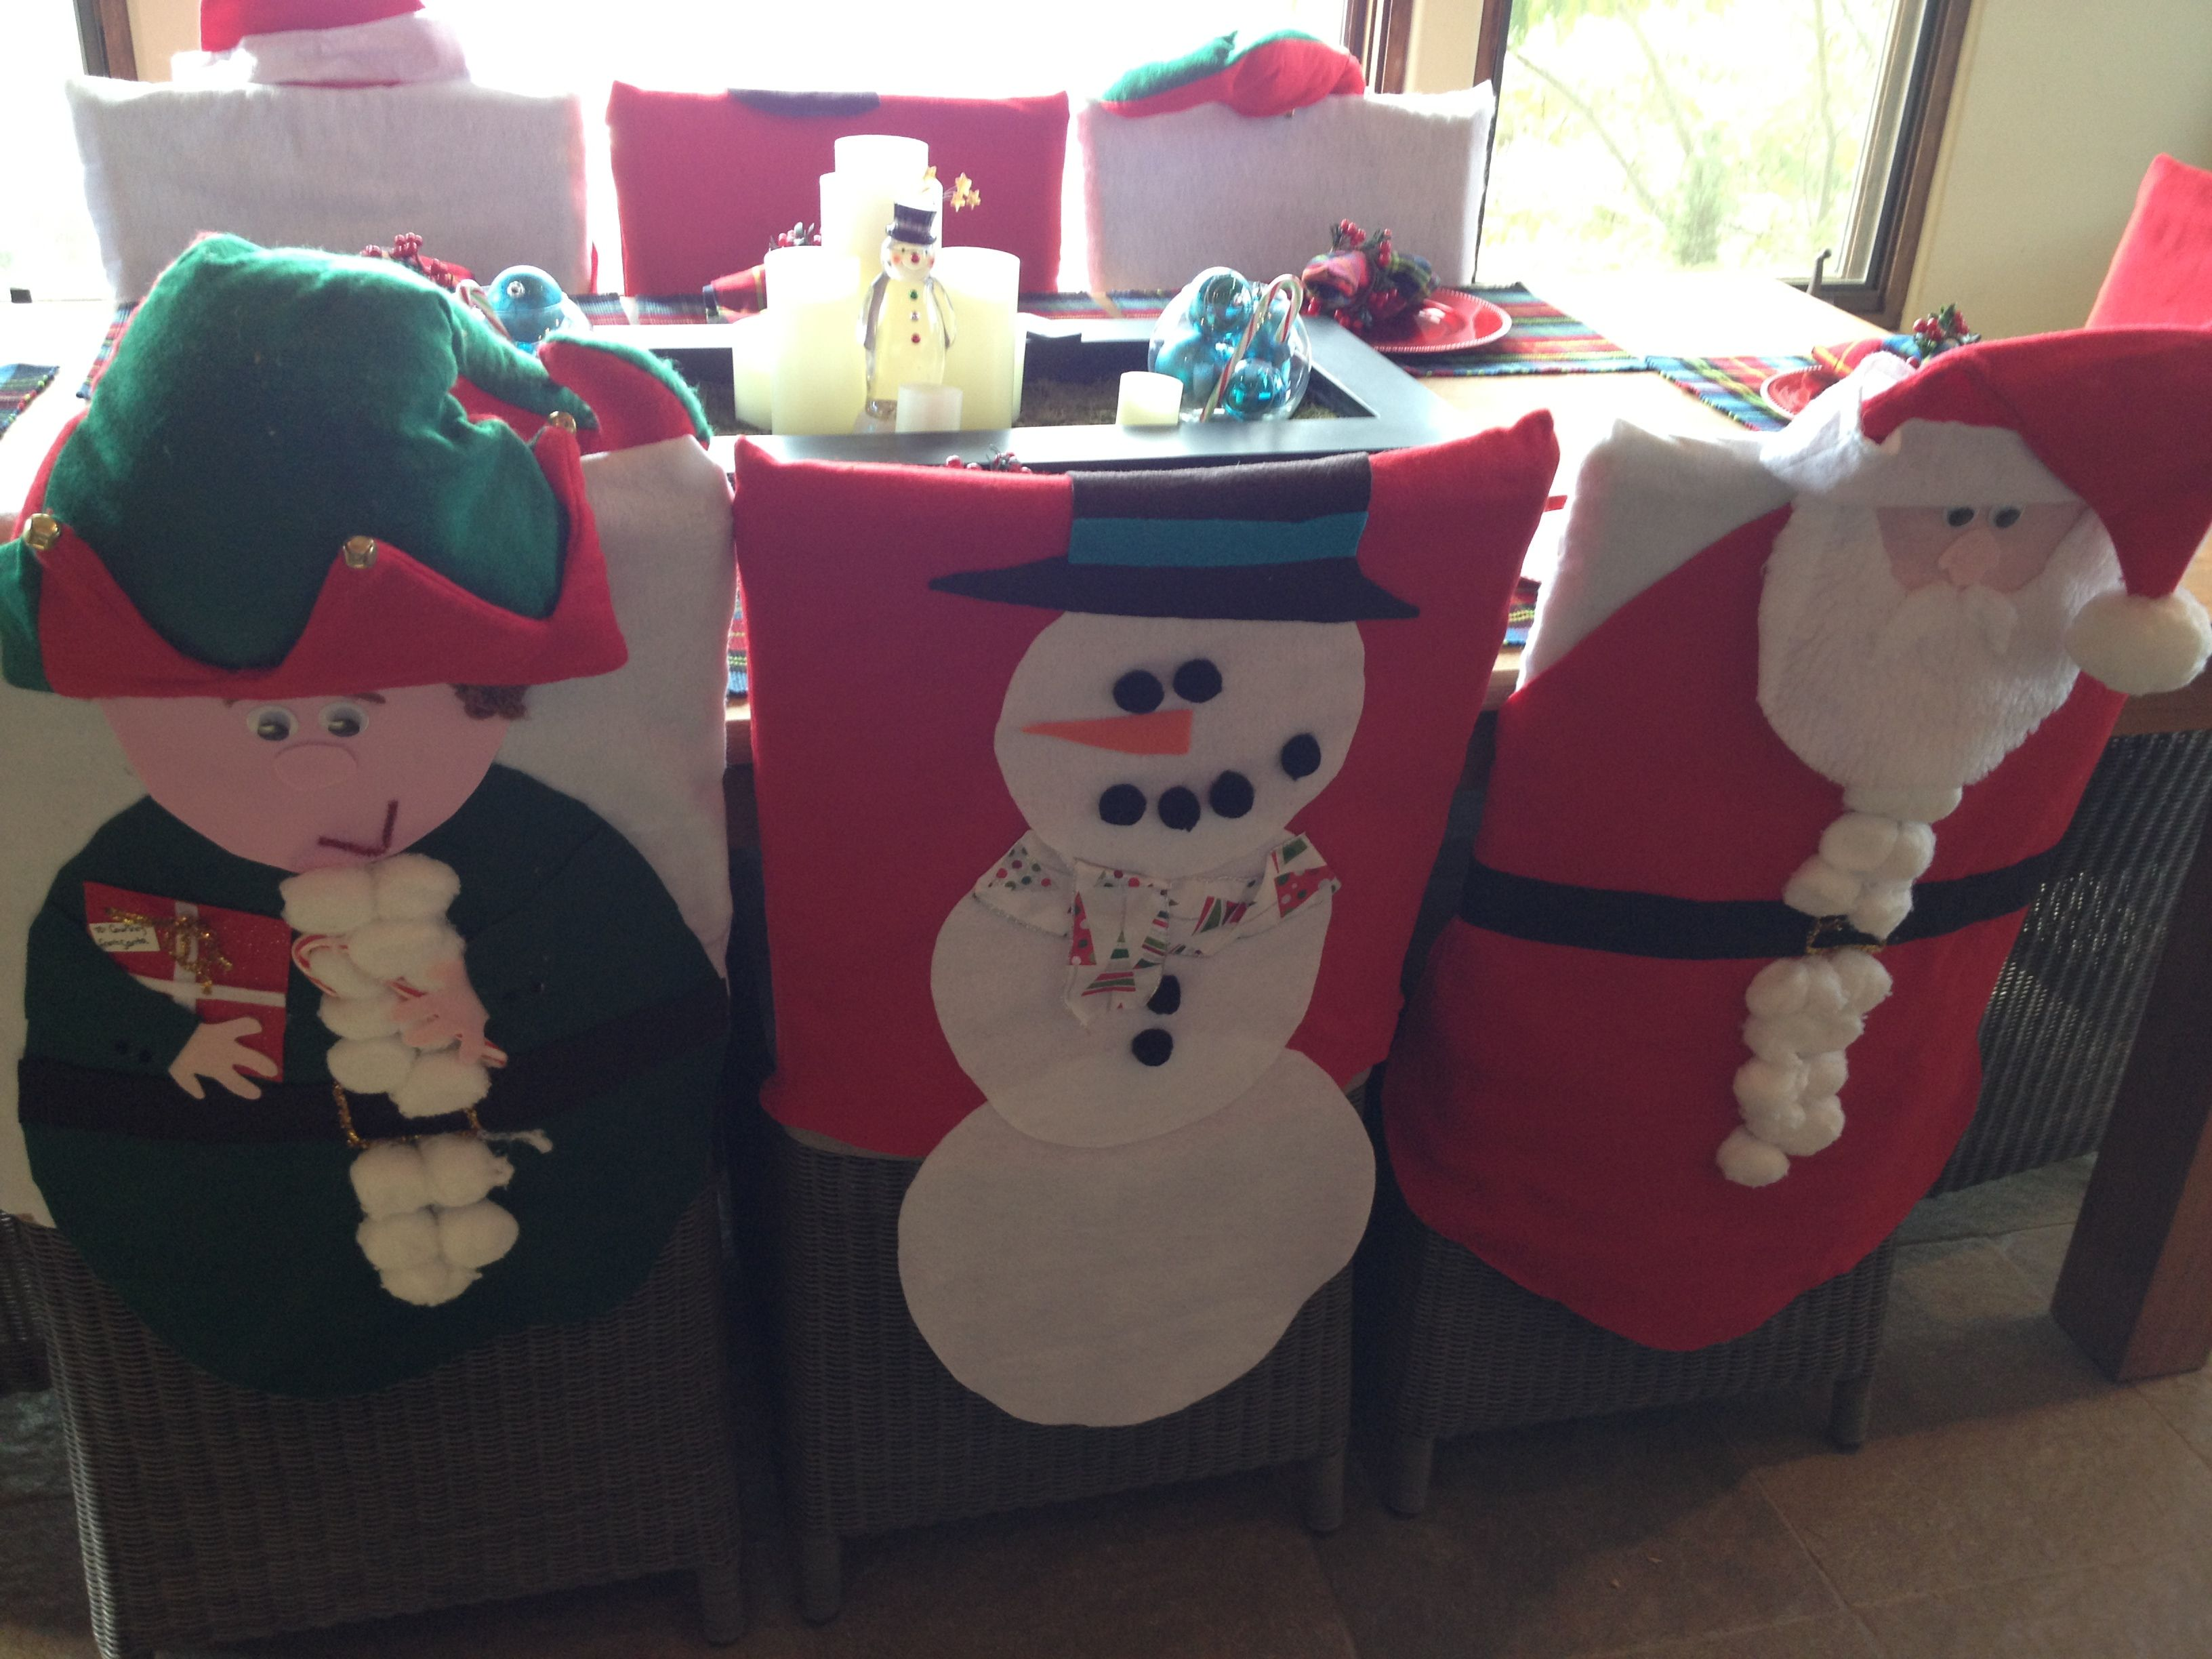 Merry Christmas Chair Covers Faux Leather Cushion Holiday Felt And Hot Glue Snowmen